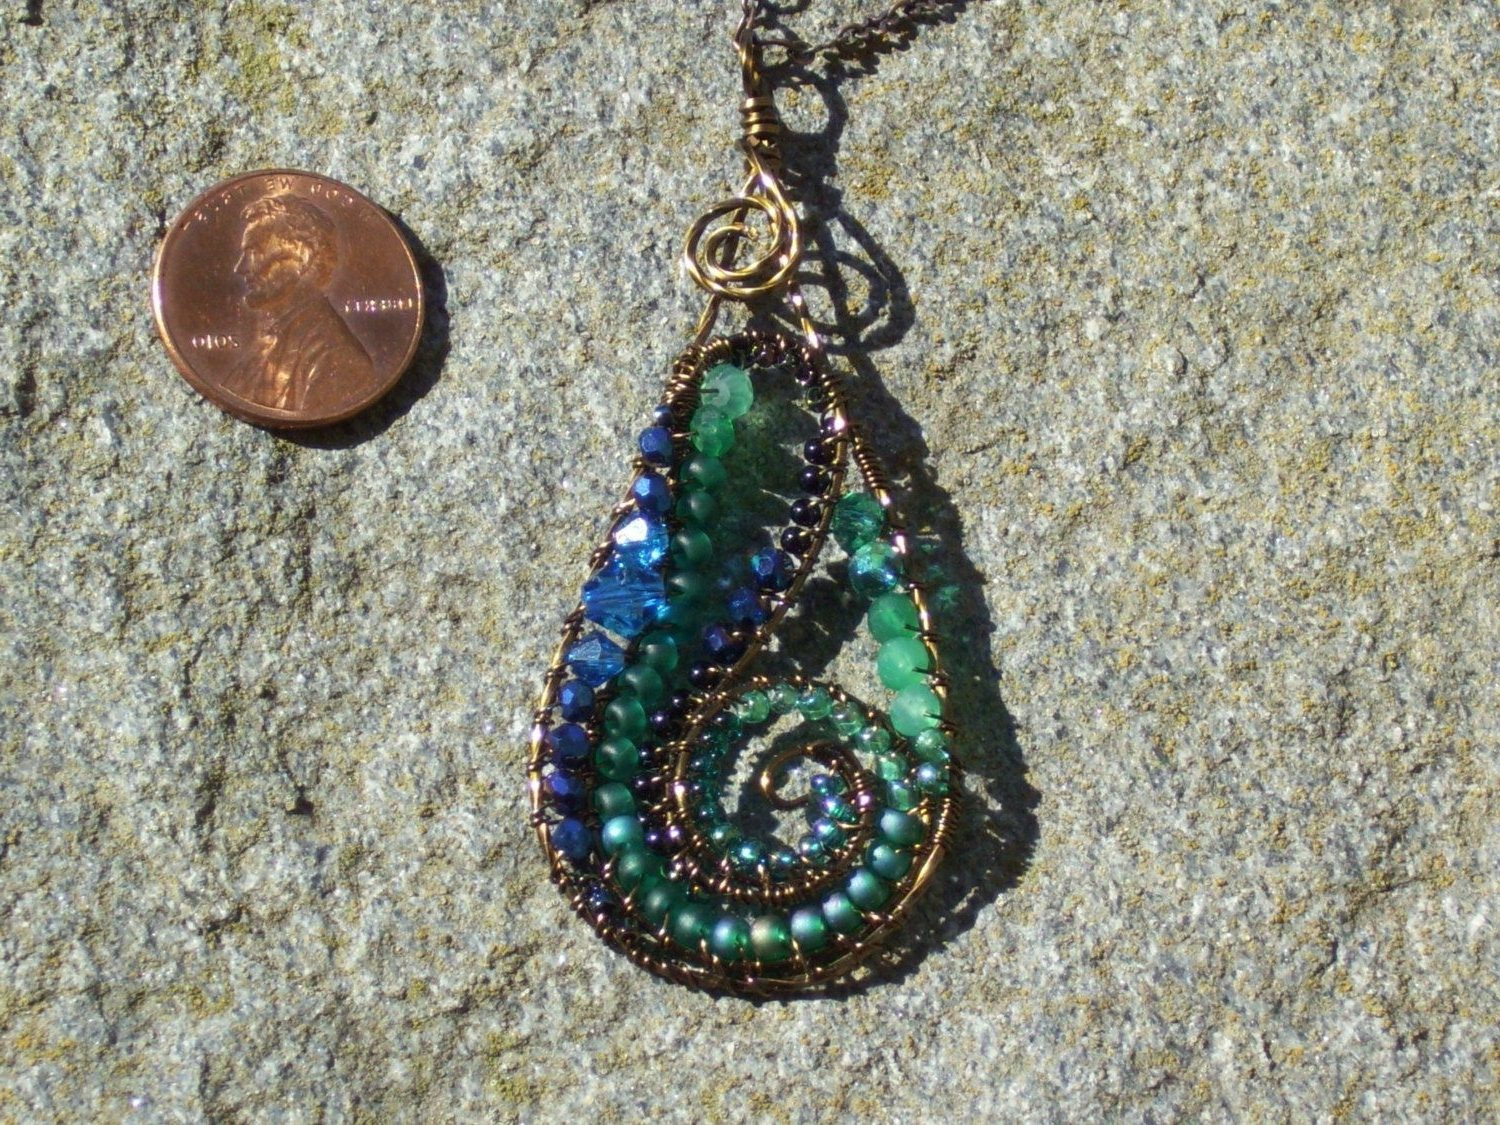 2018 Ponytail Wrapped In Copper Wire And Beads Regarding Bronze Green Blue And Black Swirl Medallion Necklace With Crystals (View 1 of 15)